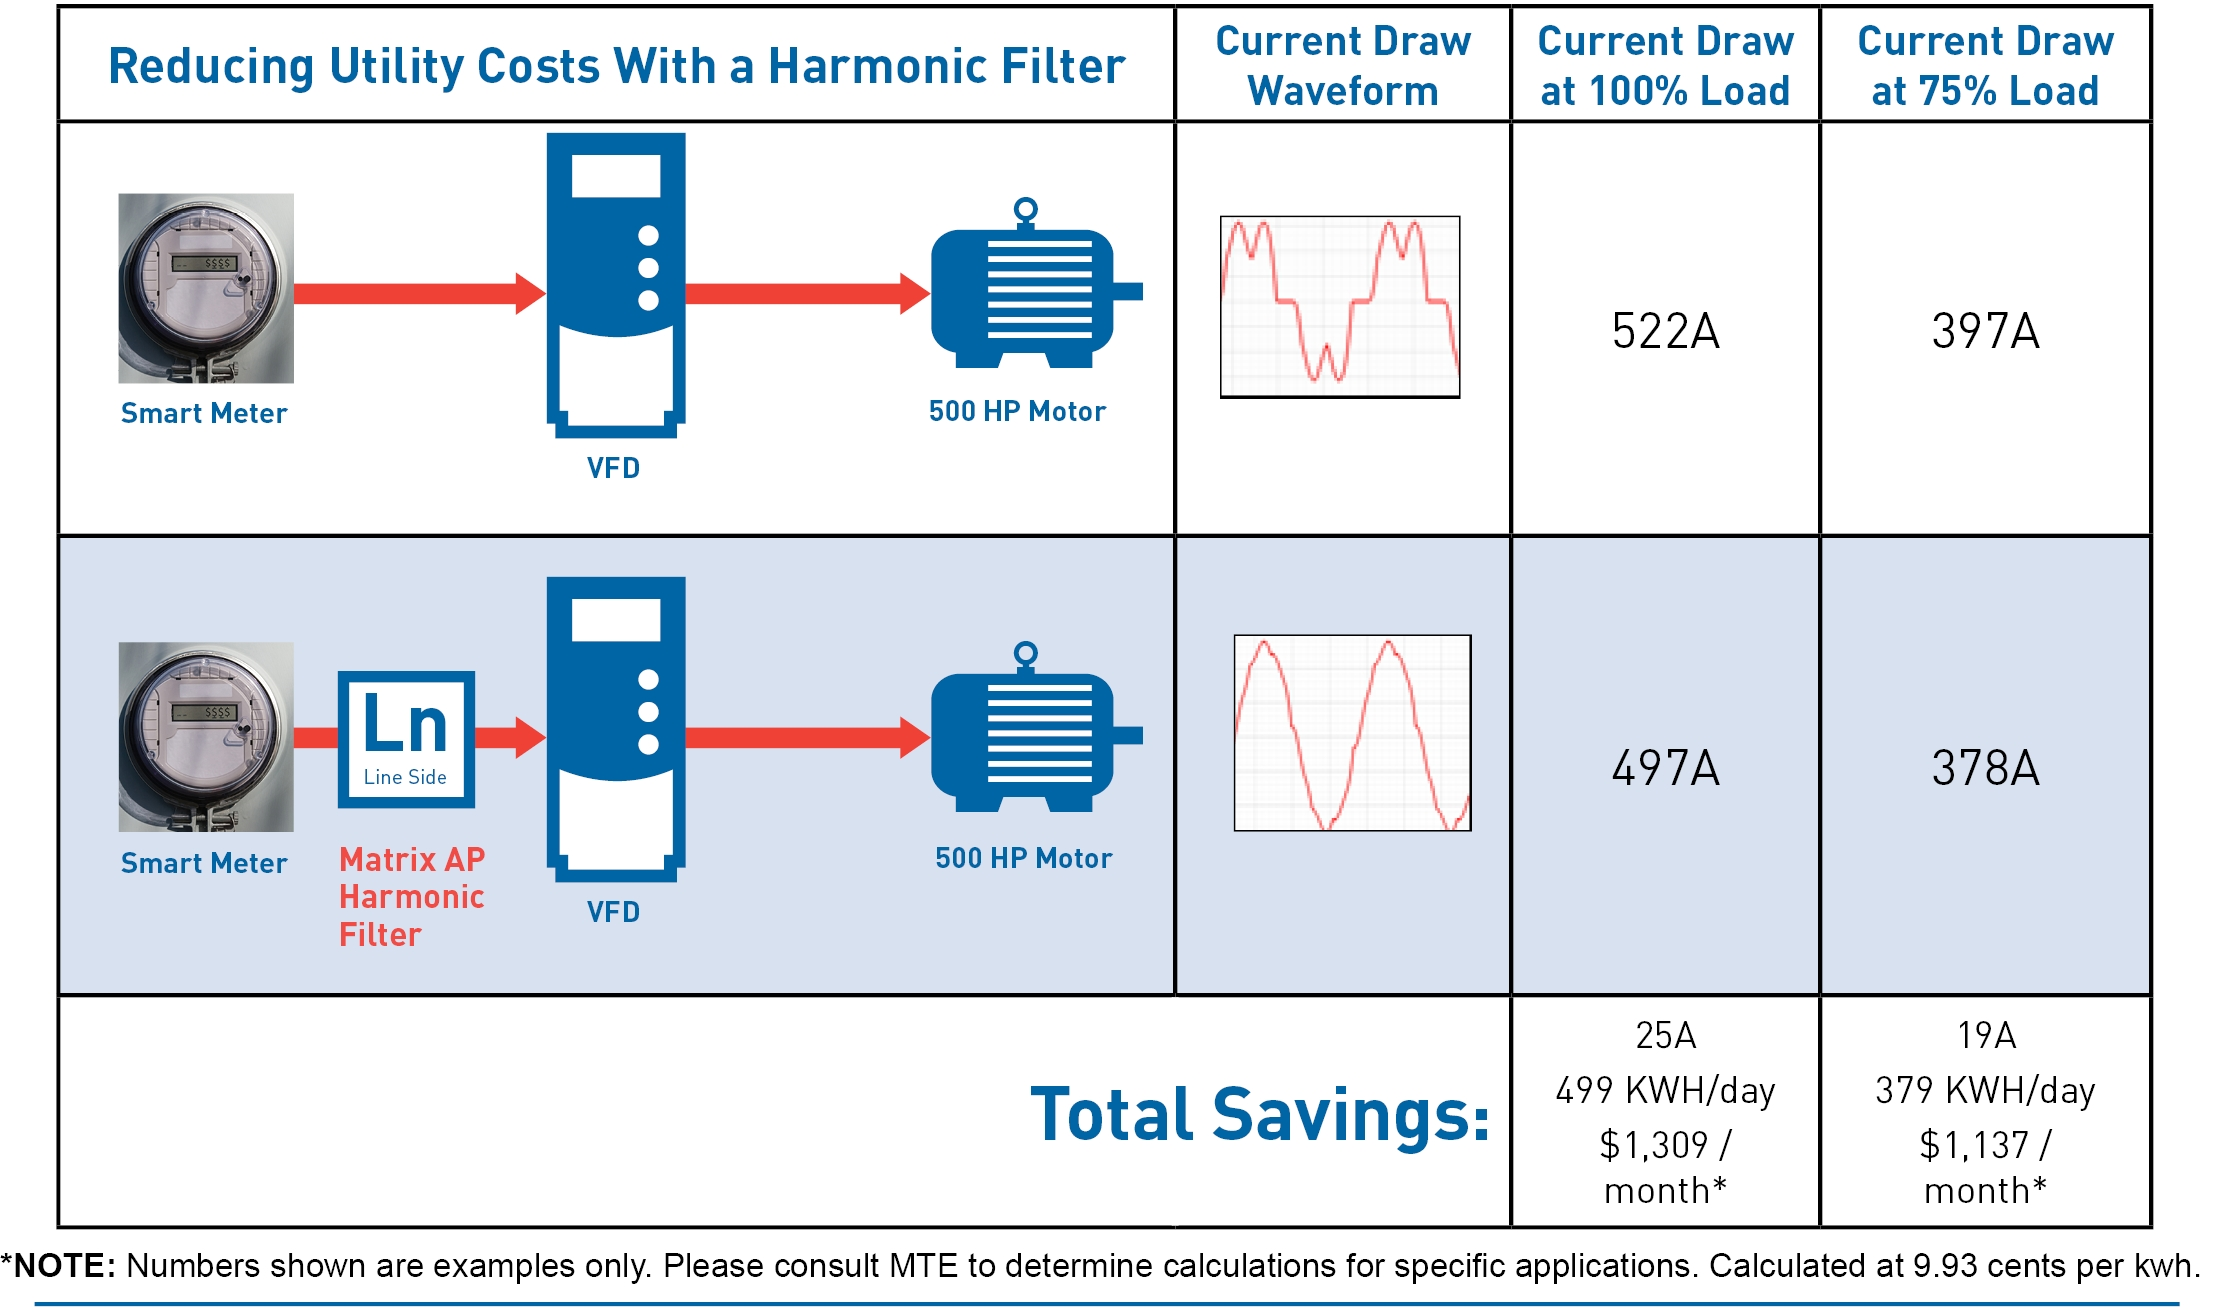 Utility Cost Savings From Reducing Harmonic Distortion